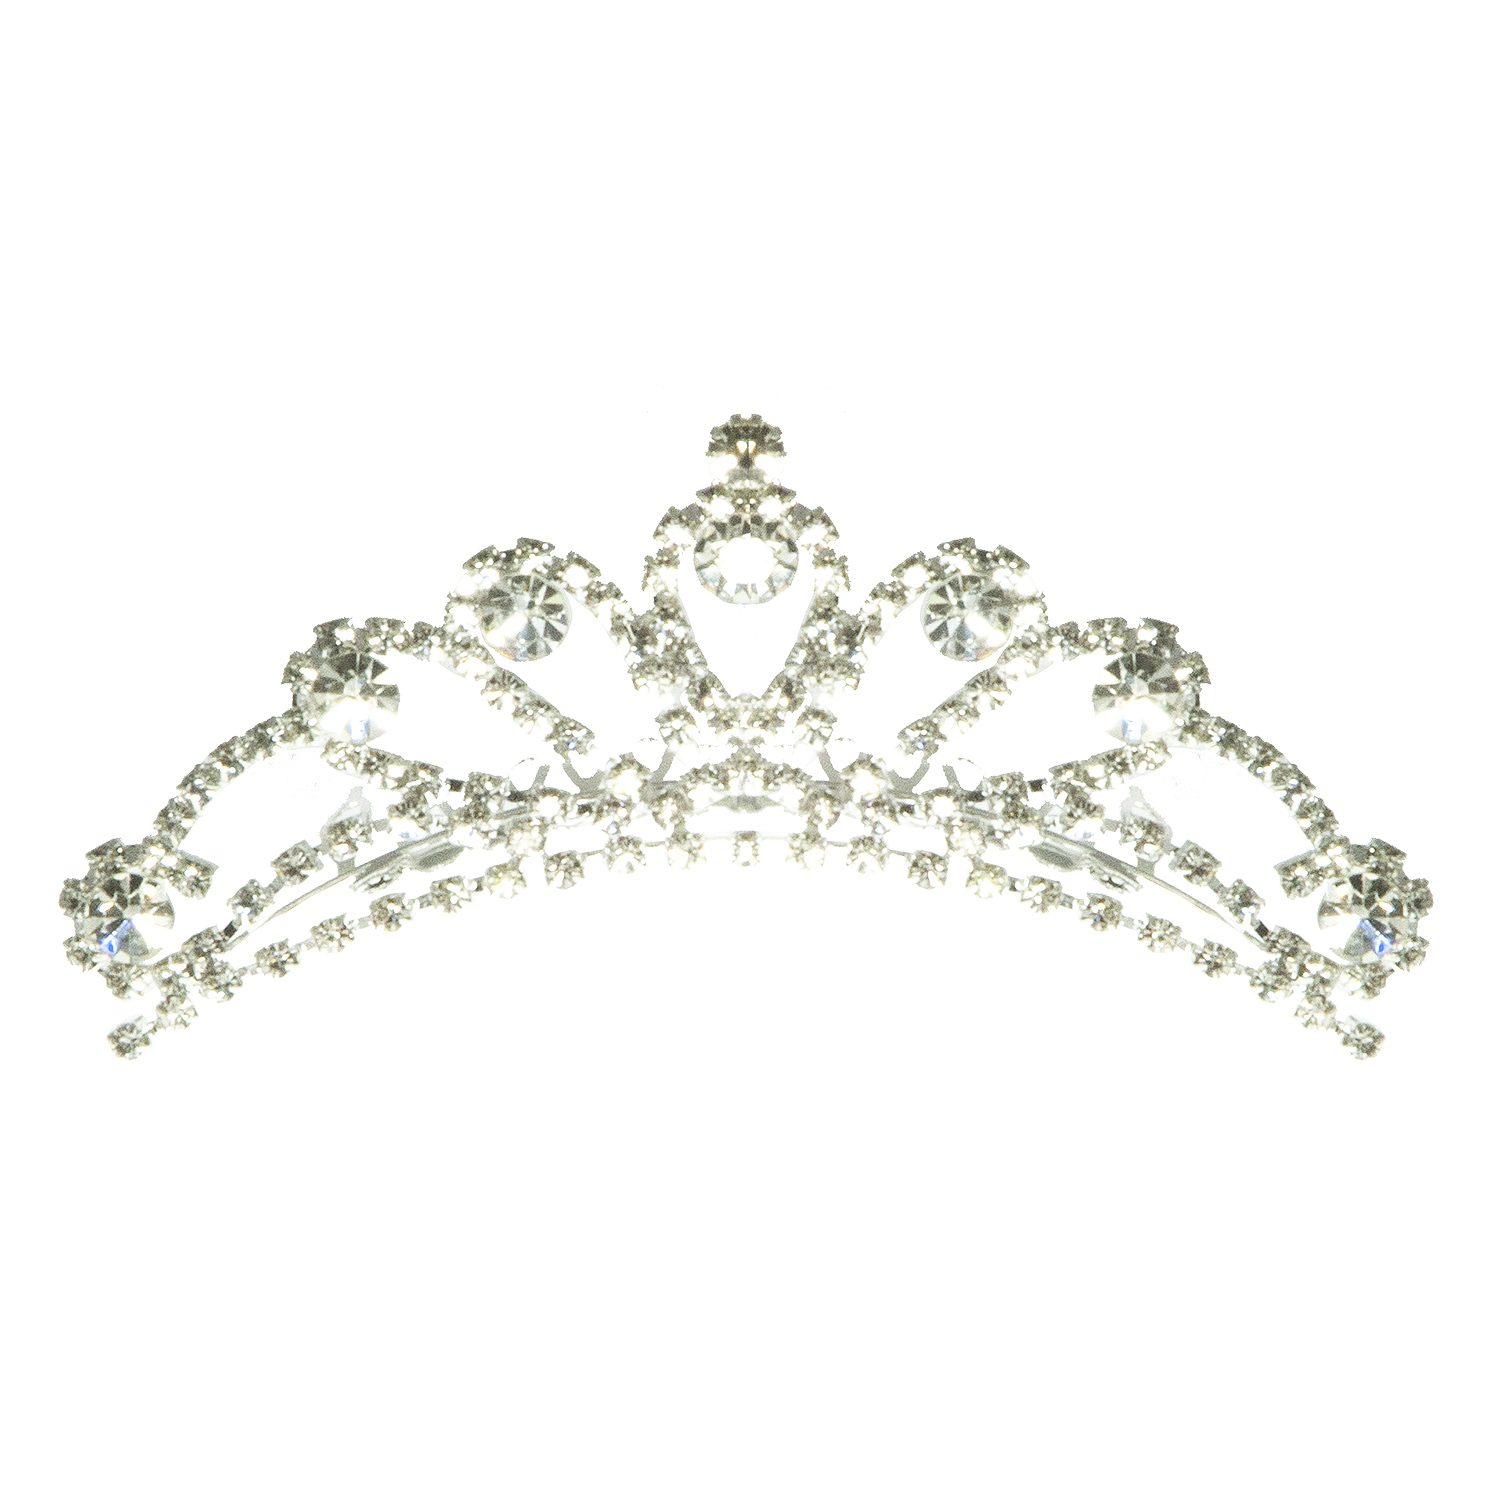 Queen Crown Transparent Png Pageant tiara PrincessQueen Crown Transparent Png